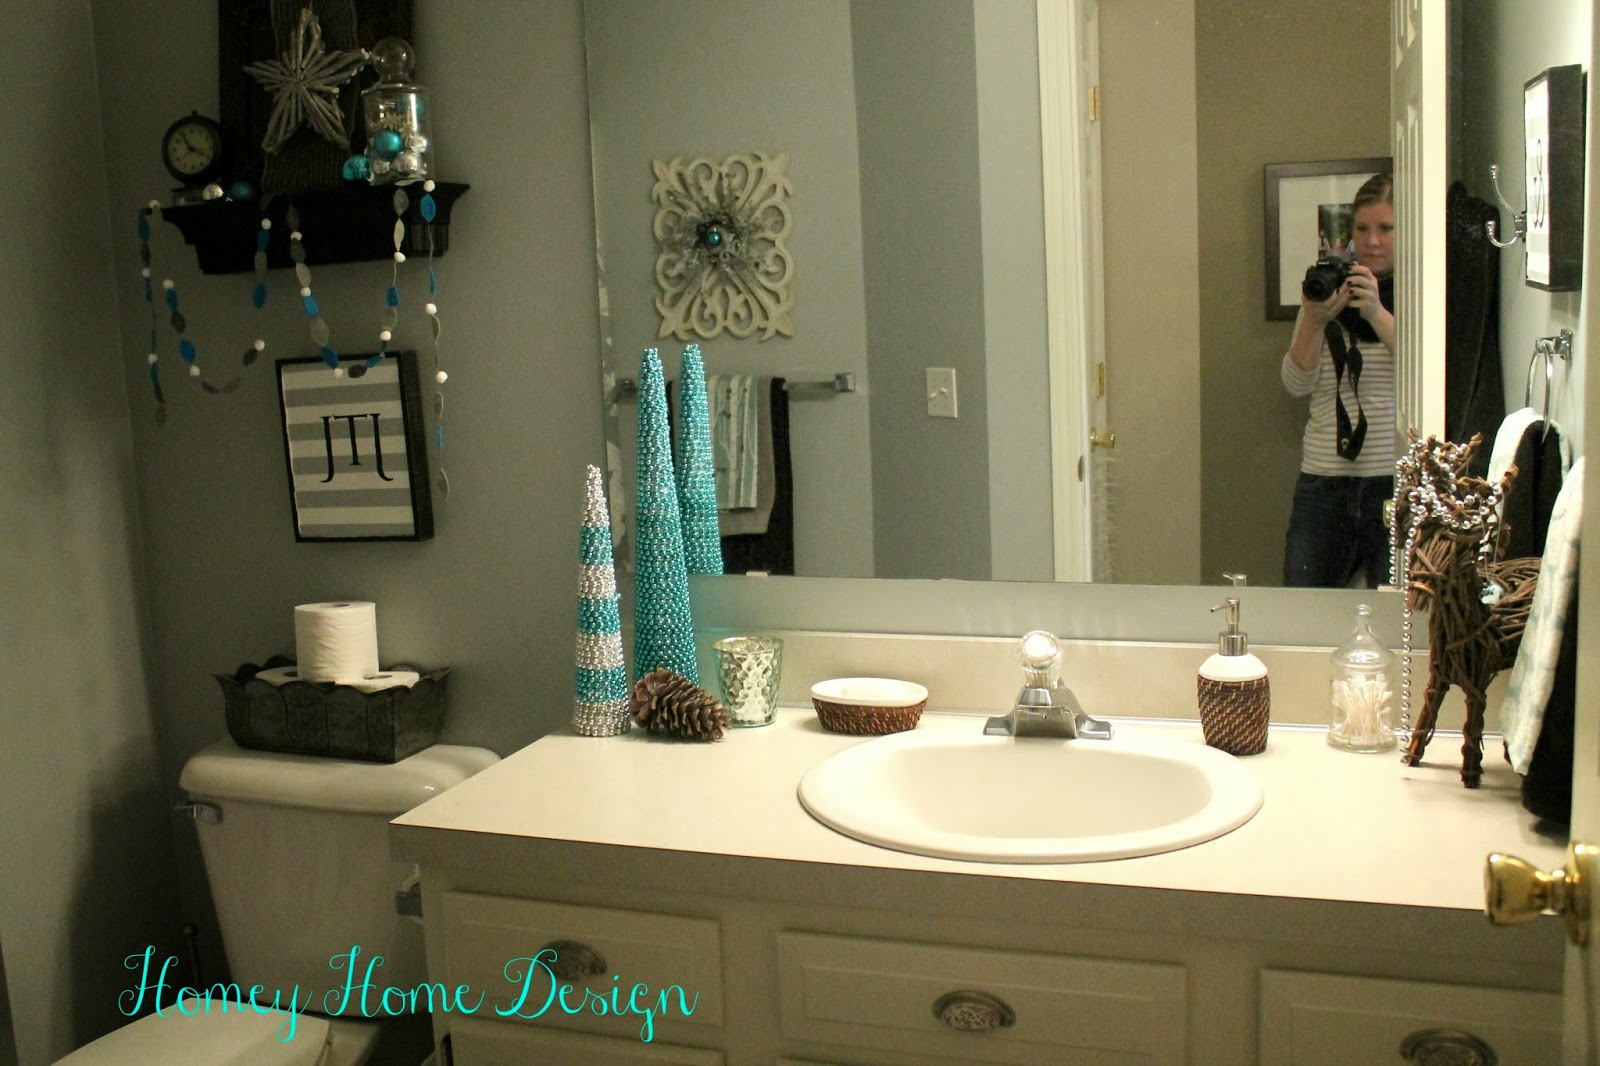 Homey home design bathroom christmas ideas for Bathroom decorating tips